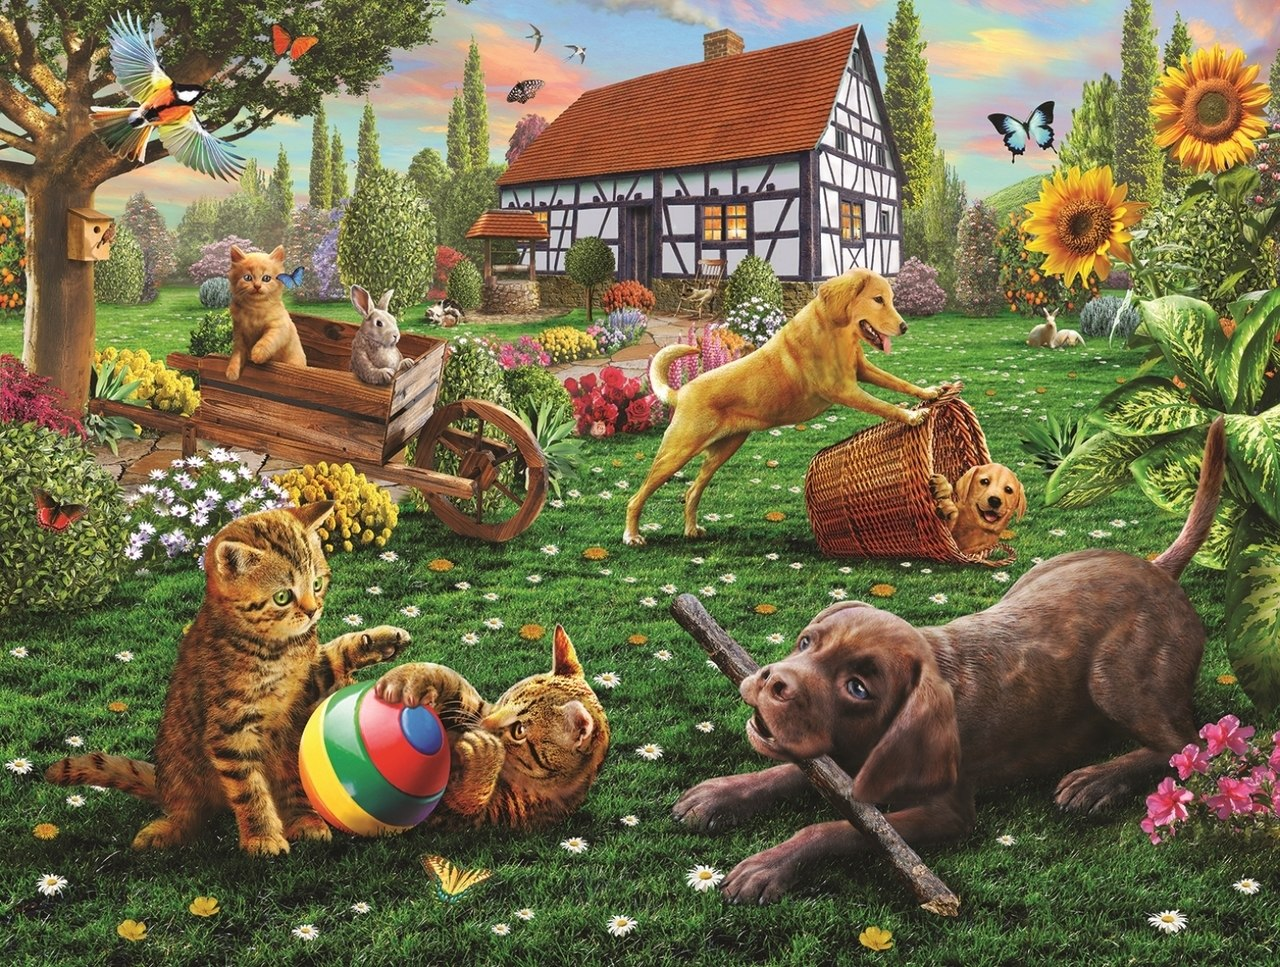 Dogs and Cats at Play - 500pc Jigsaw Puzzle By Sunsout  			  					NEW